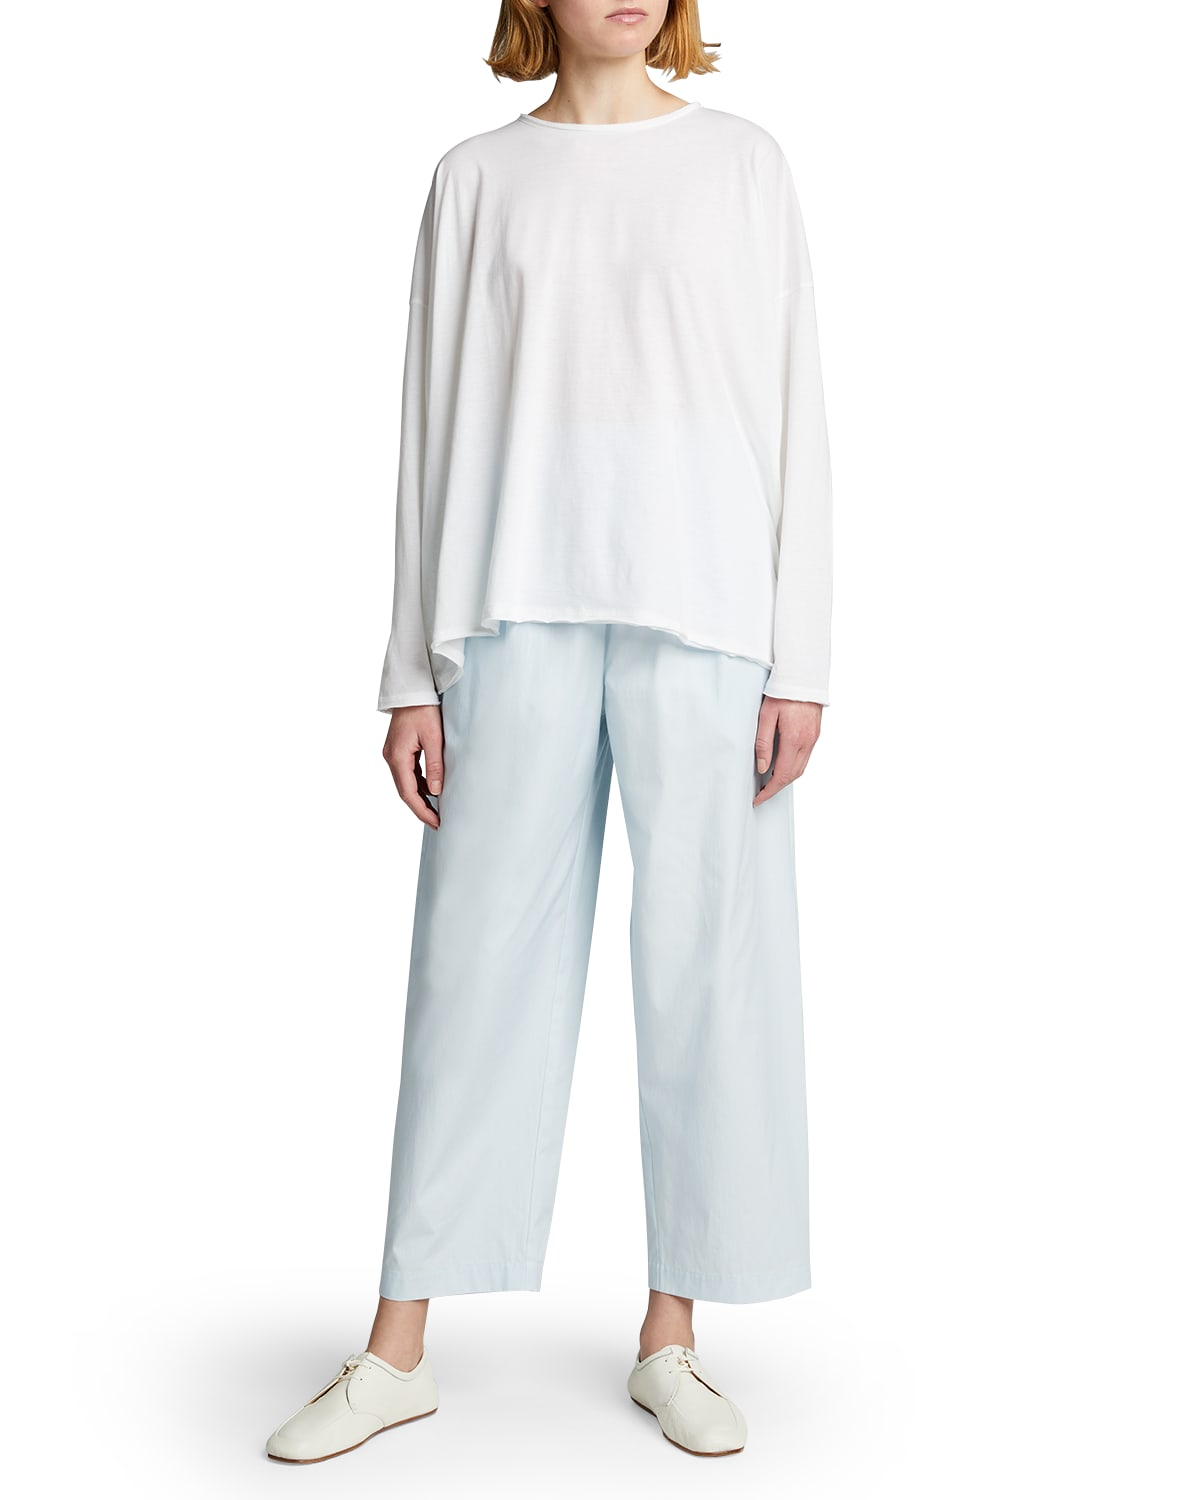 Cotton Japanese Trousers